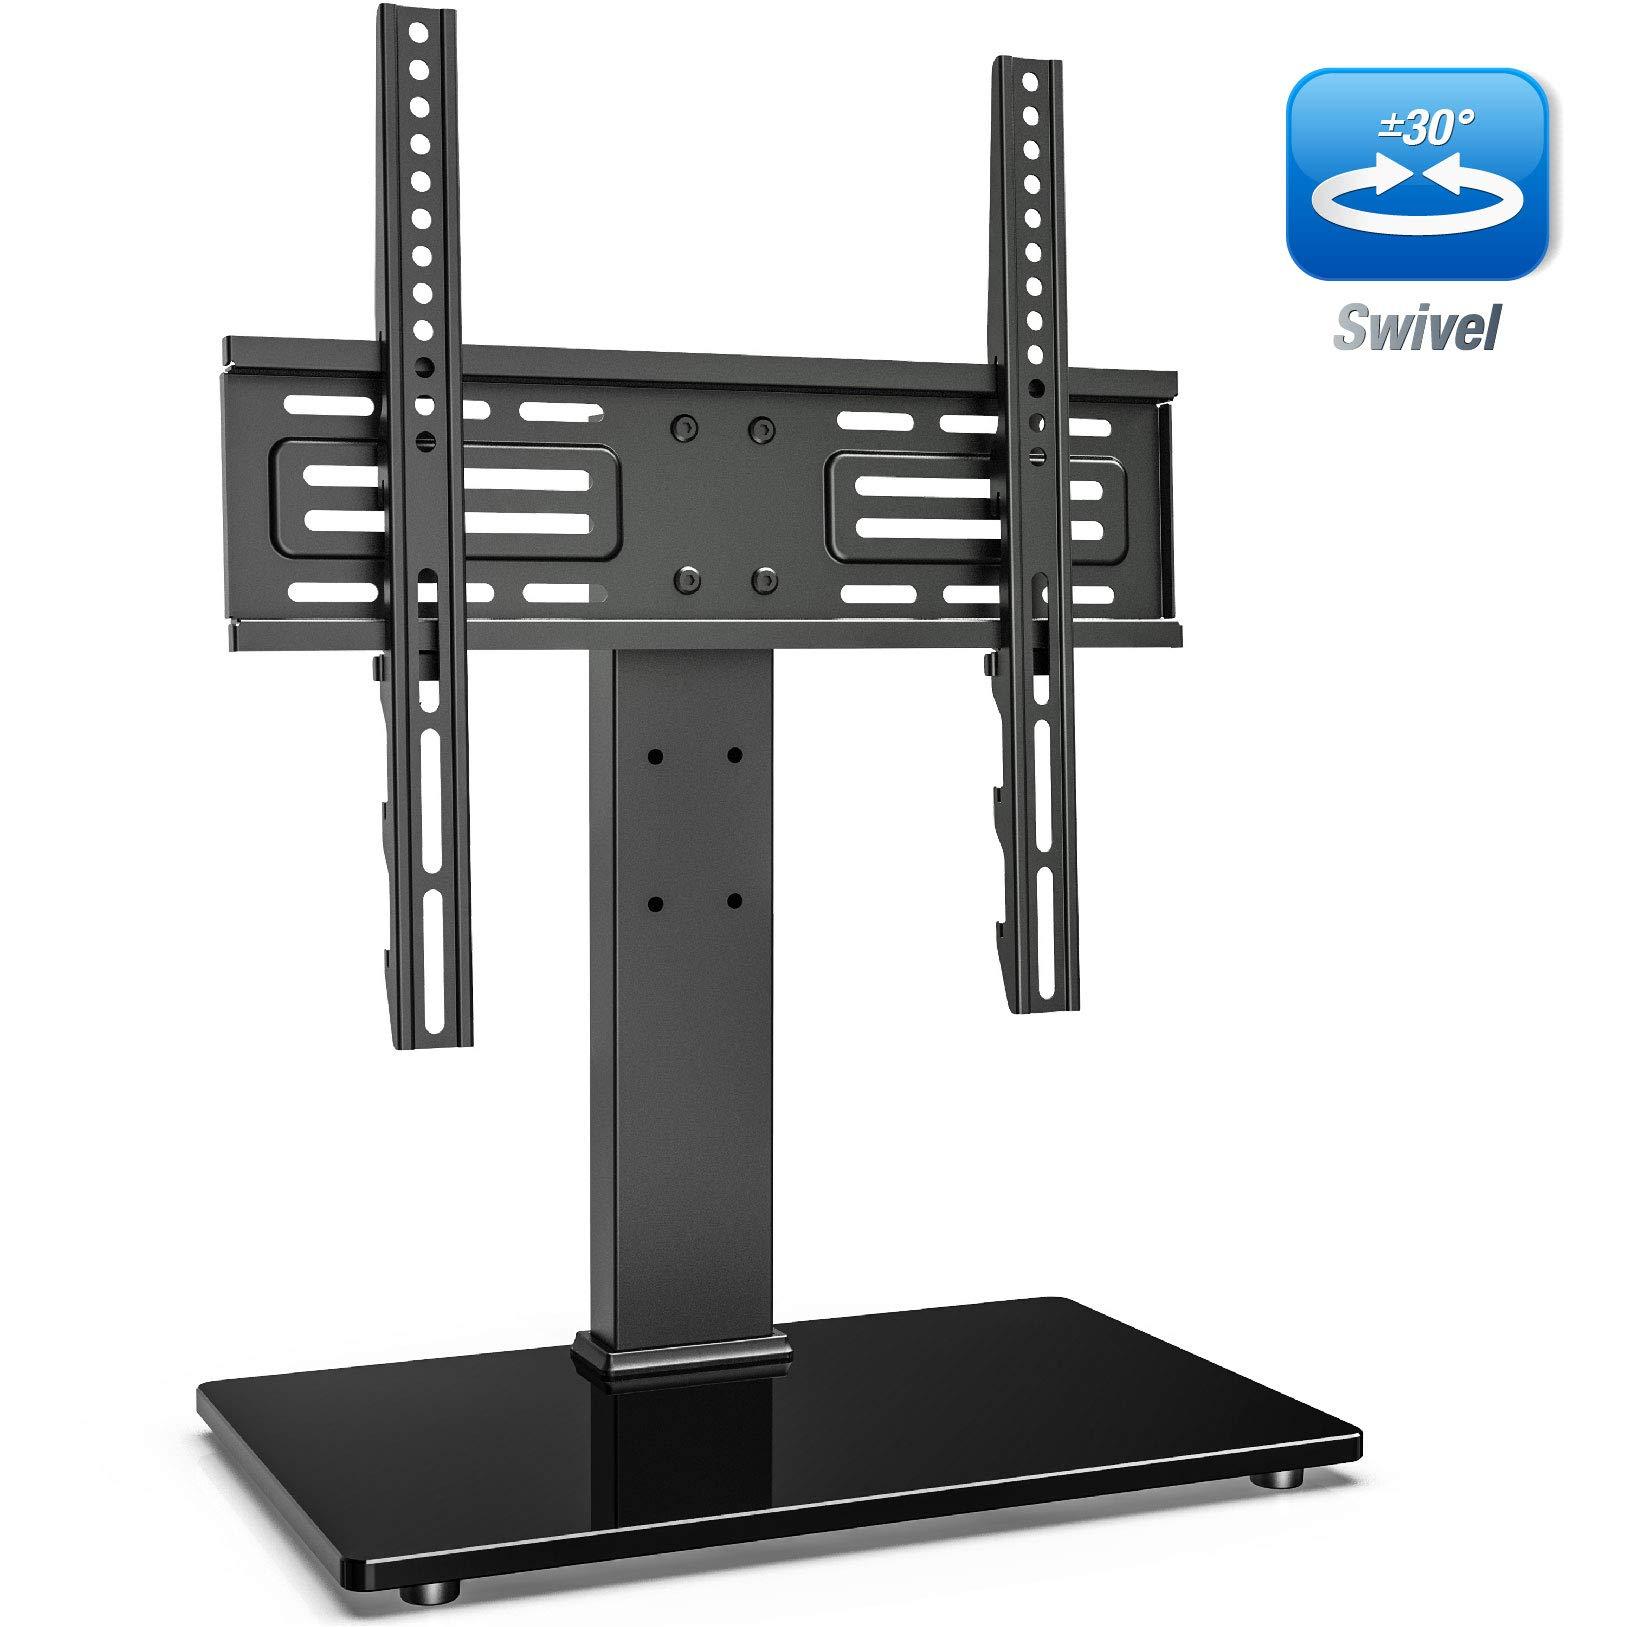 FITUEYES Universal Swivel TV Stand for 27-55 inch LCD LED TVs Height Adjustable TV Base with Tempered Glass Security Wire VESA 400x400mm TT103702GB by FITUEYES